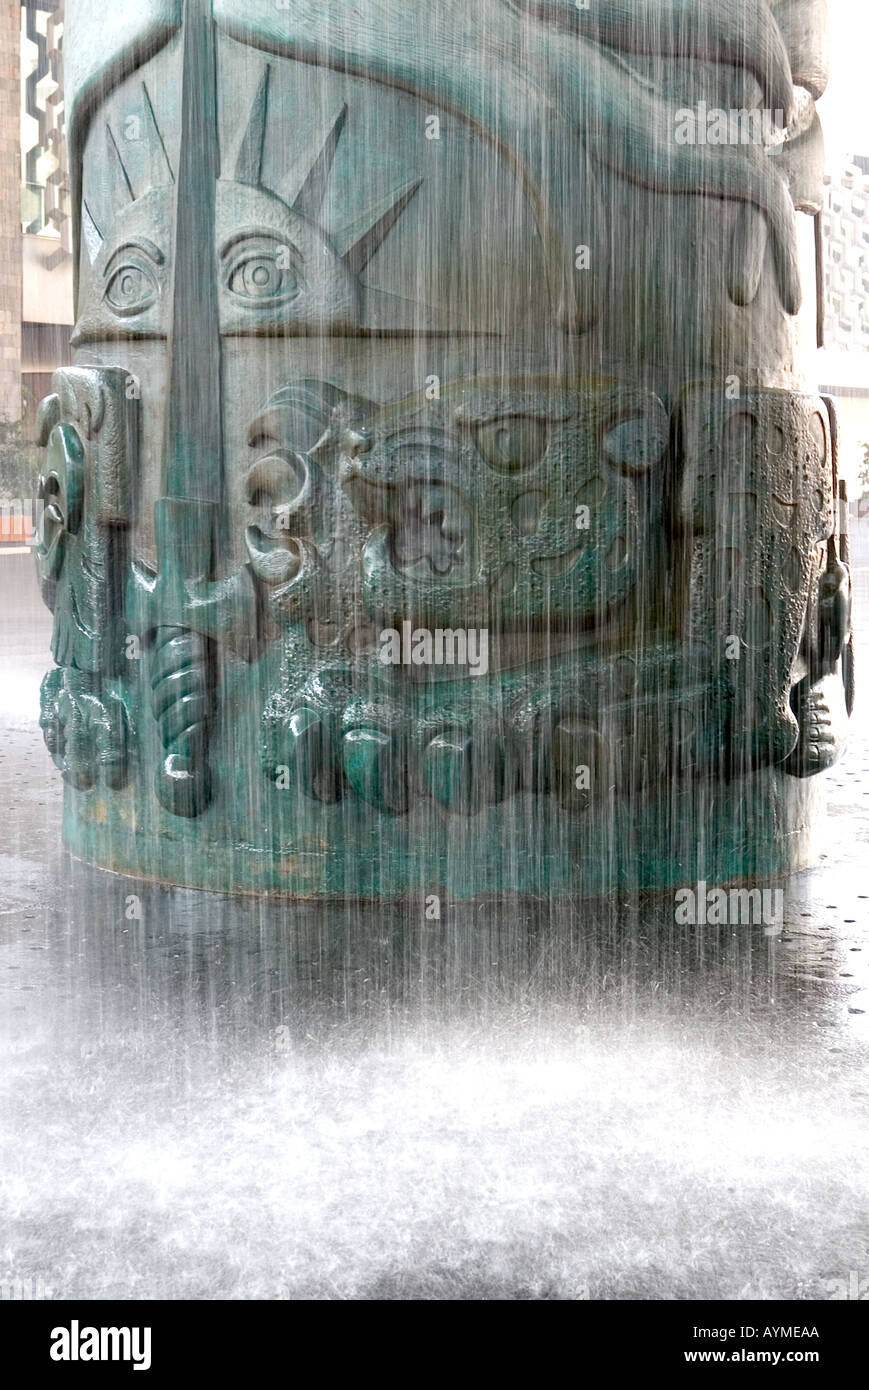 Chávez Morado fountain in the National Anthropological Museum Mexico City - Stock Image